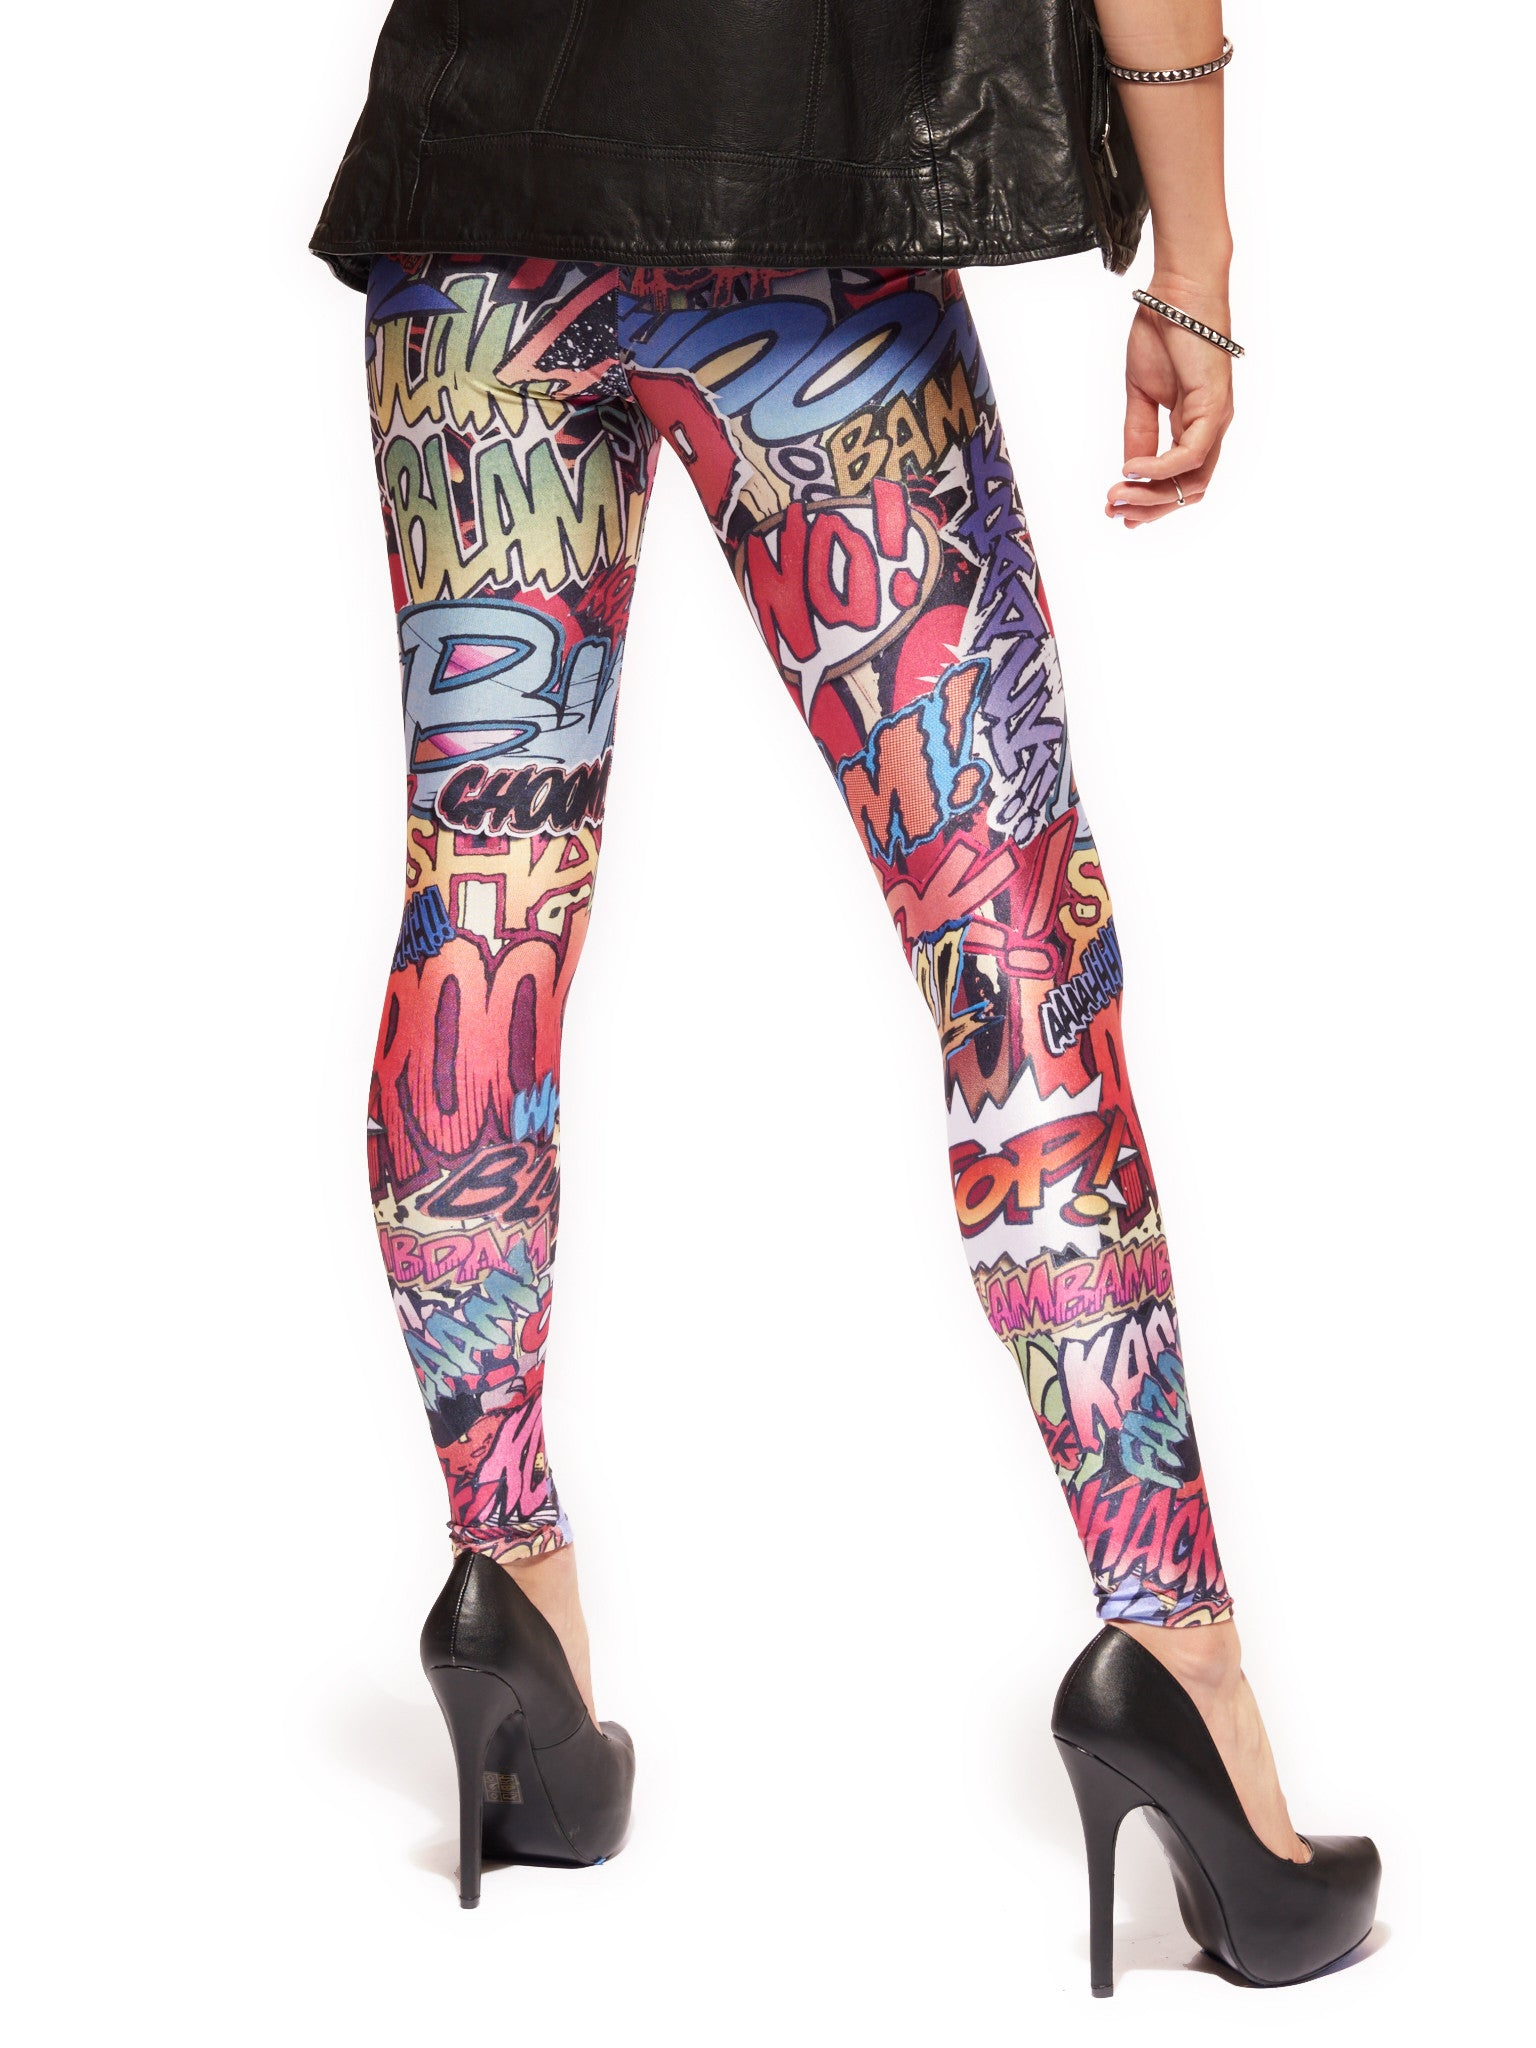 Action Packed Queen West Leggings - Nuvango  - 3